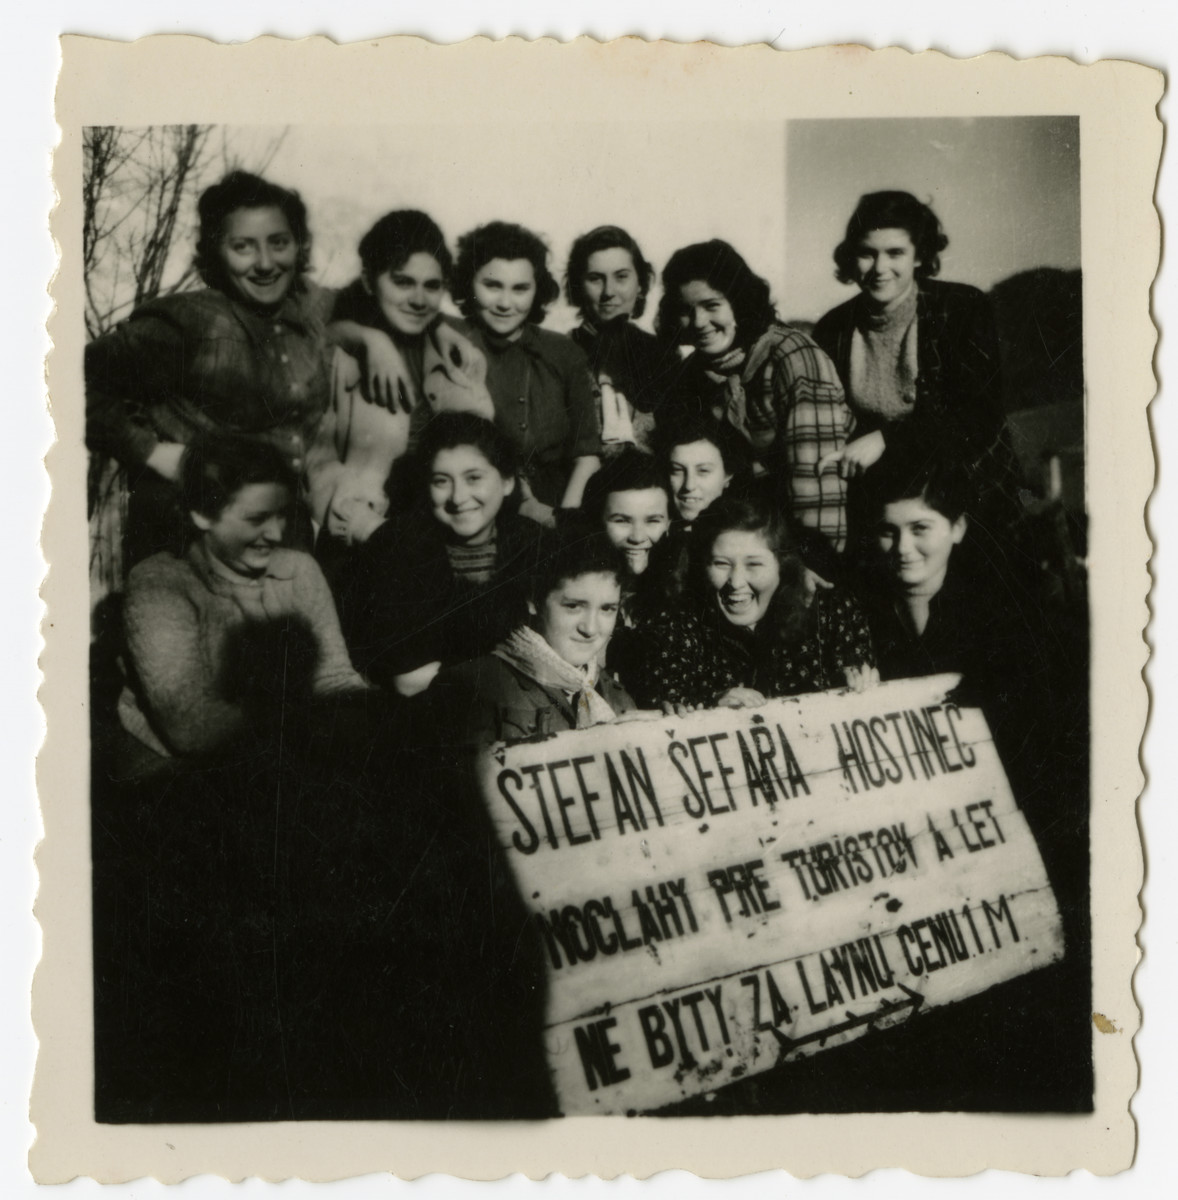 """A group of Polish Zionist youth go on an excursion to Slovakia.  Fela Liwer is in the second row on the far left.  The girls are holding a sign that reads:  """"Stefan Sefara inn/guesthouse overnight stays for tourists and holiday homes for a cheap price 1 M(eter)"""""""